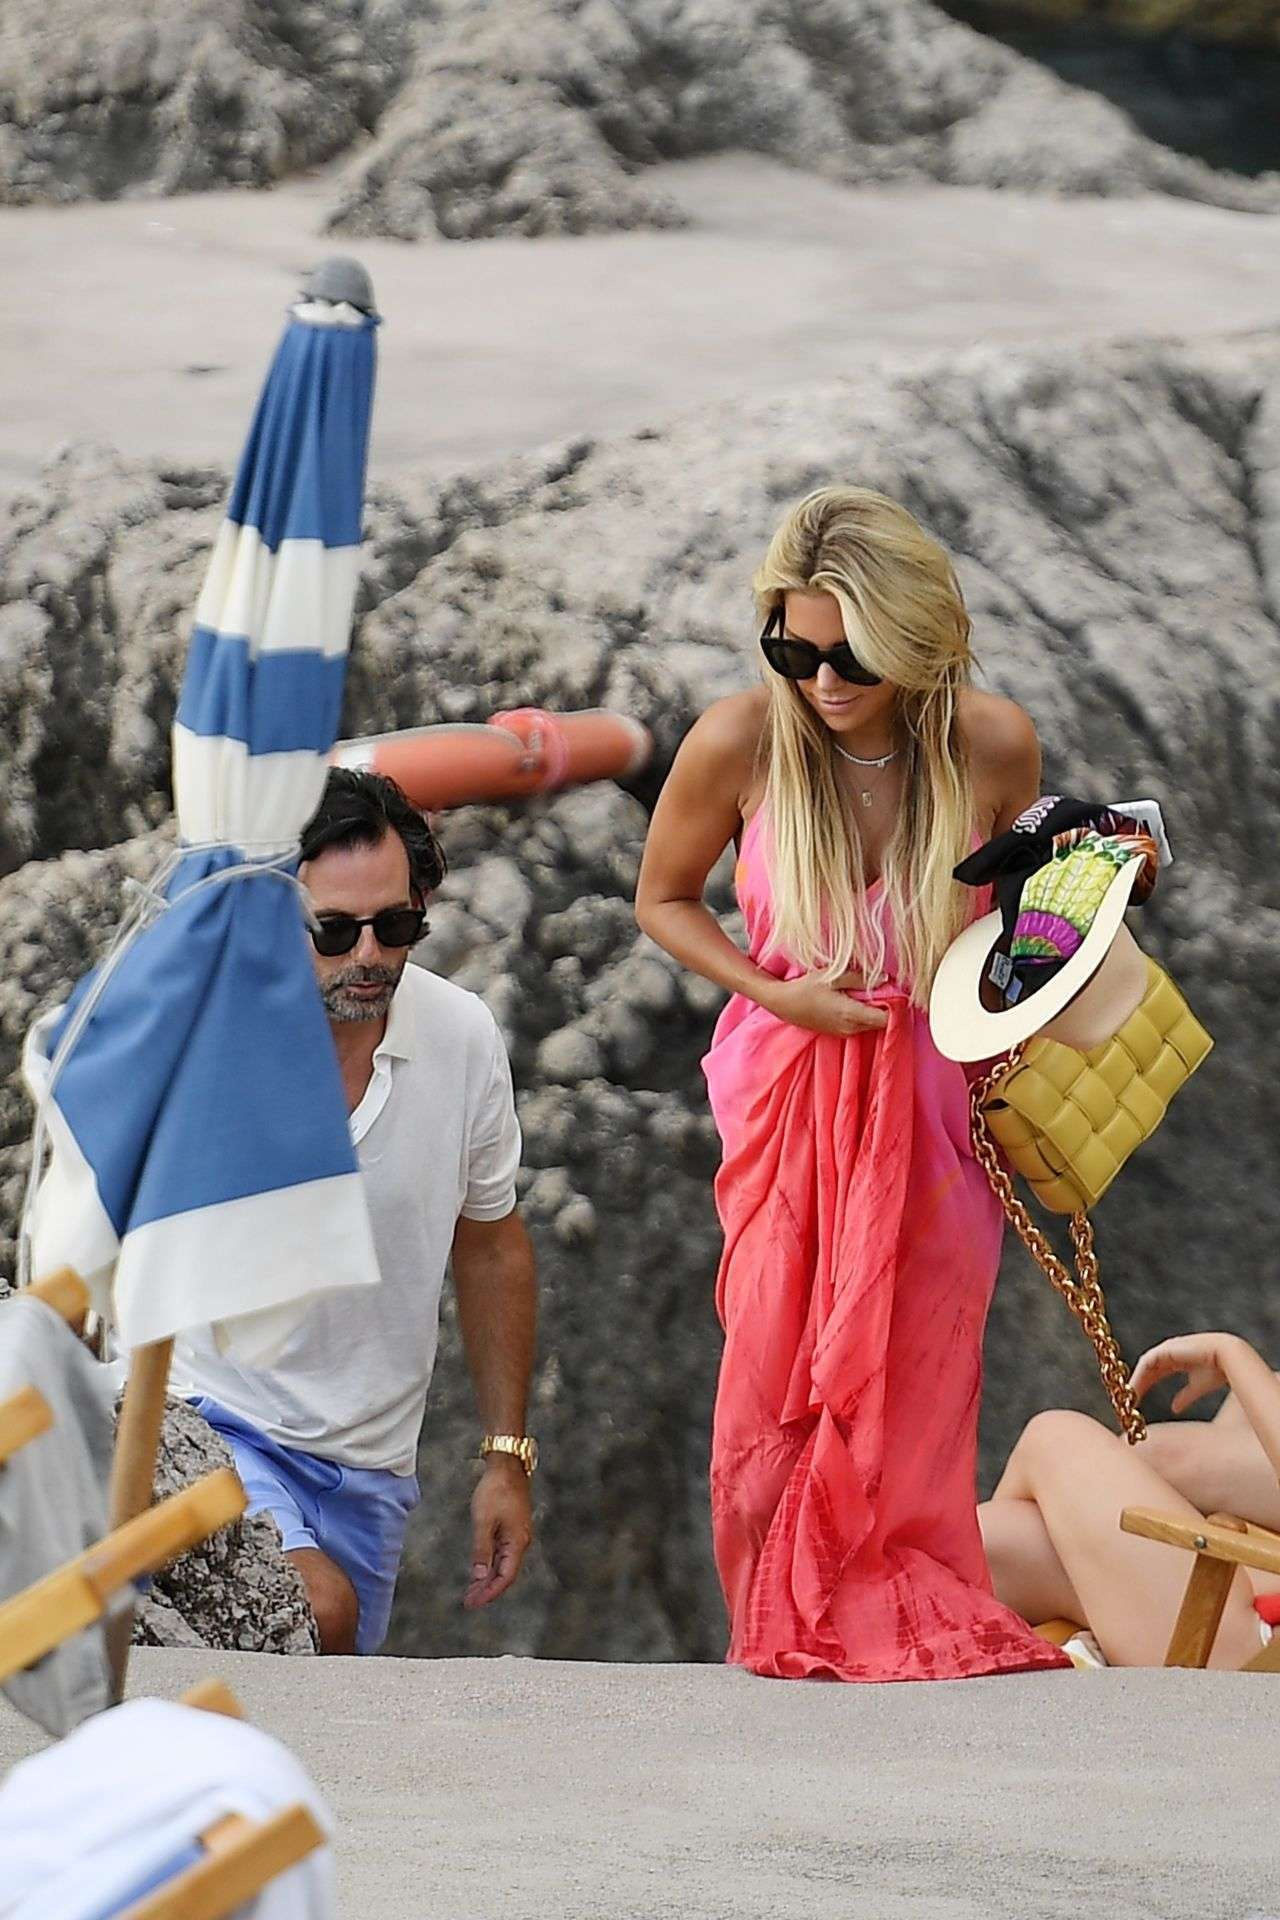 Sylvie Meis in Bikini and Niclas Castello Are Spotted During Their Honeymoon in Capri